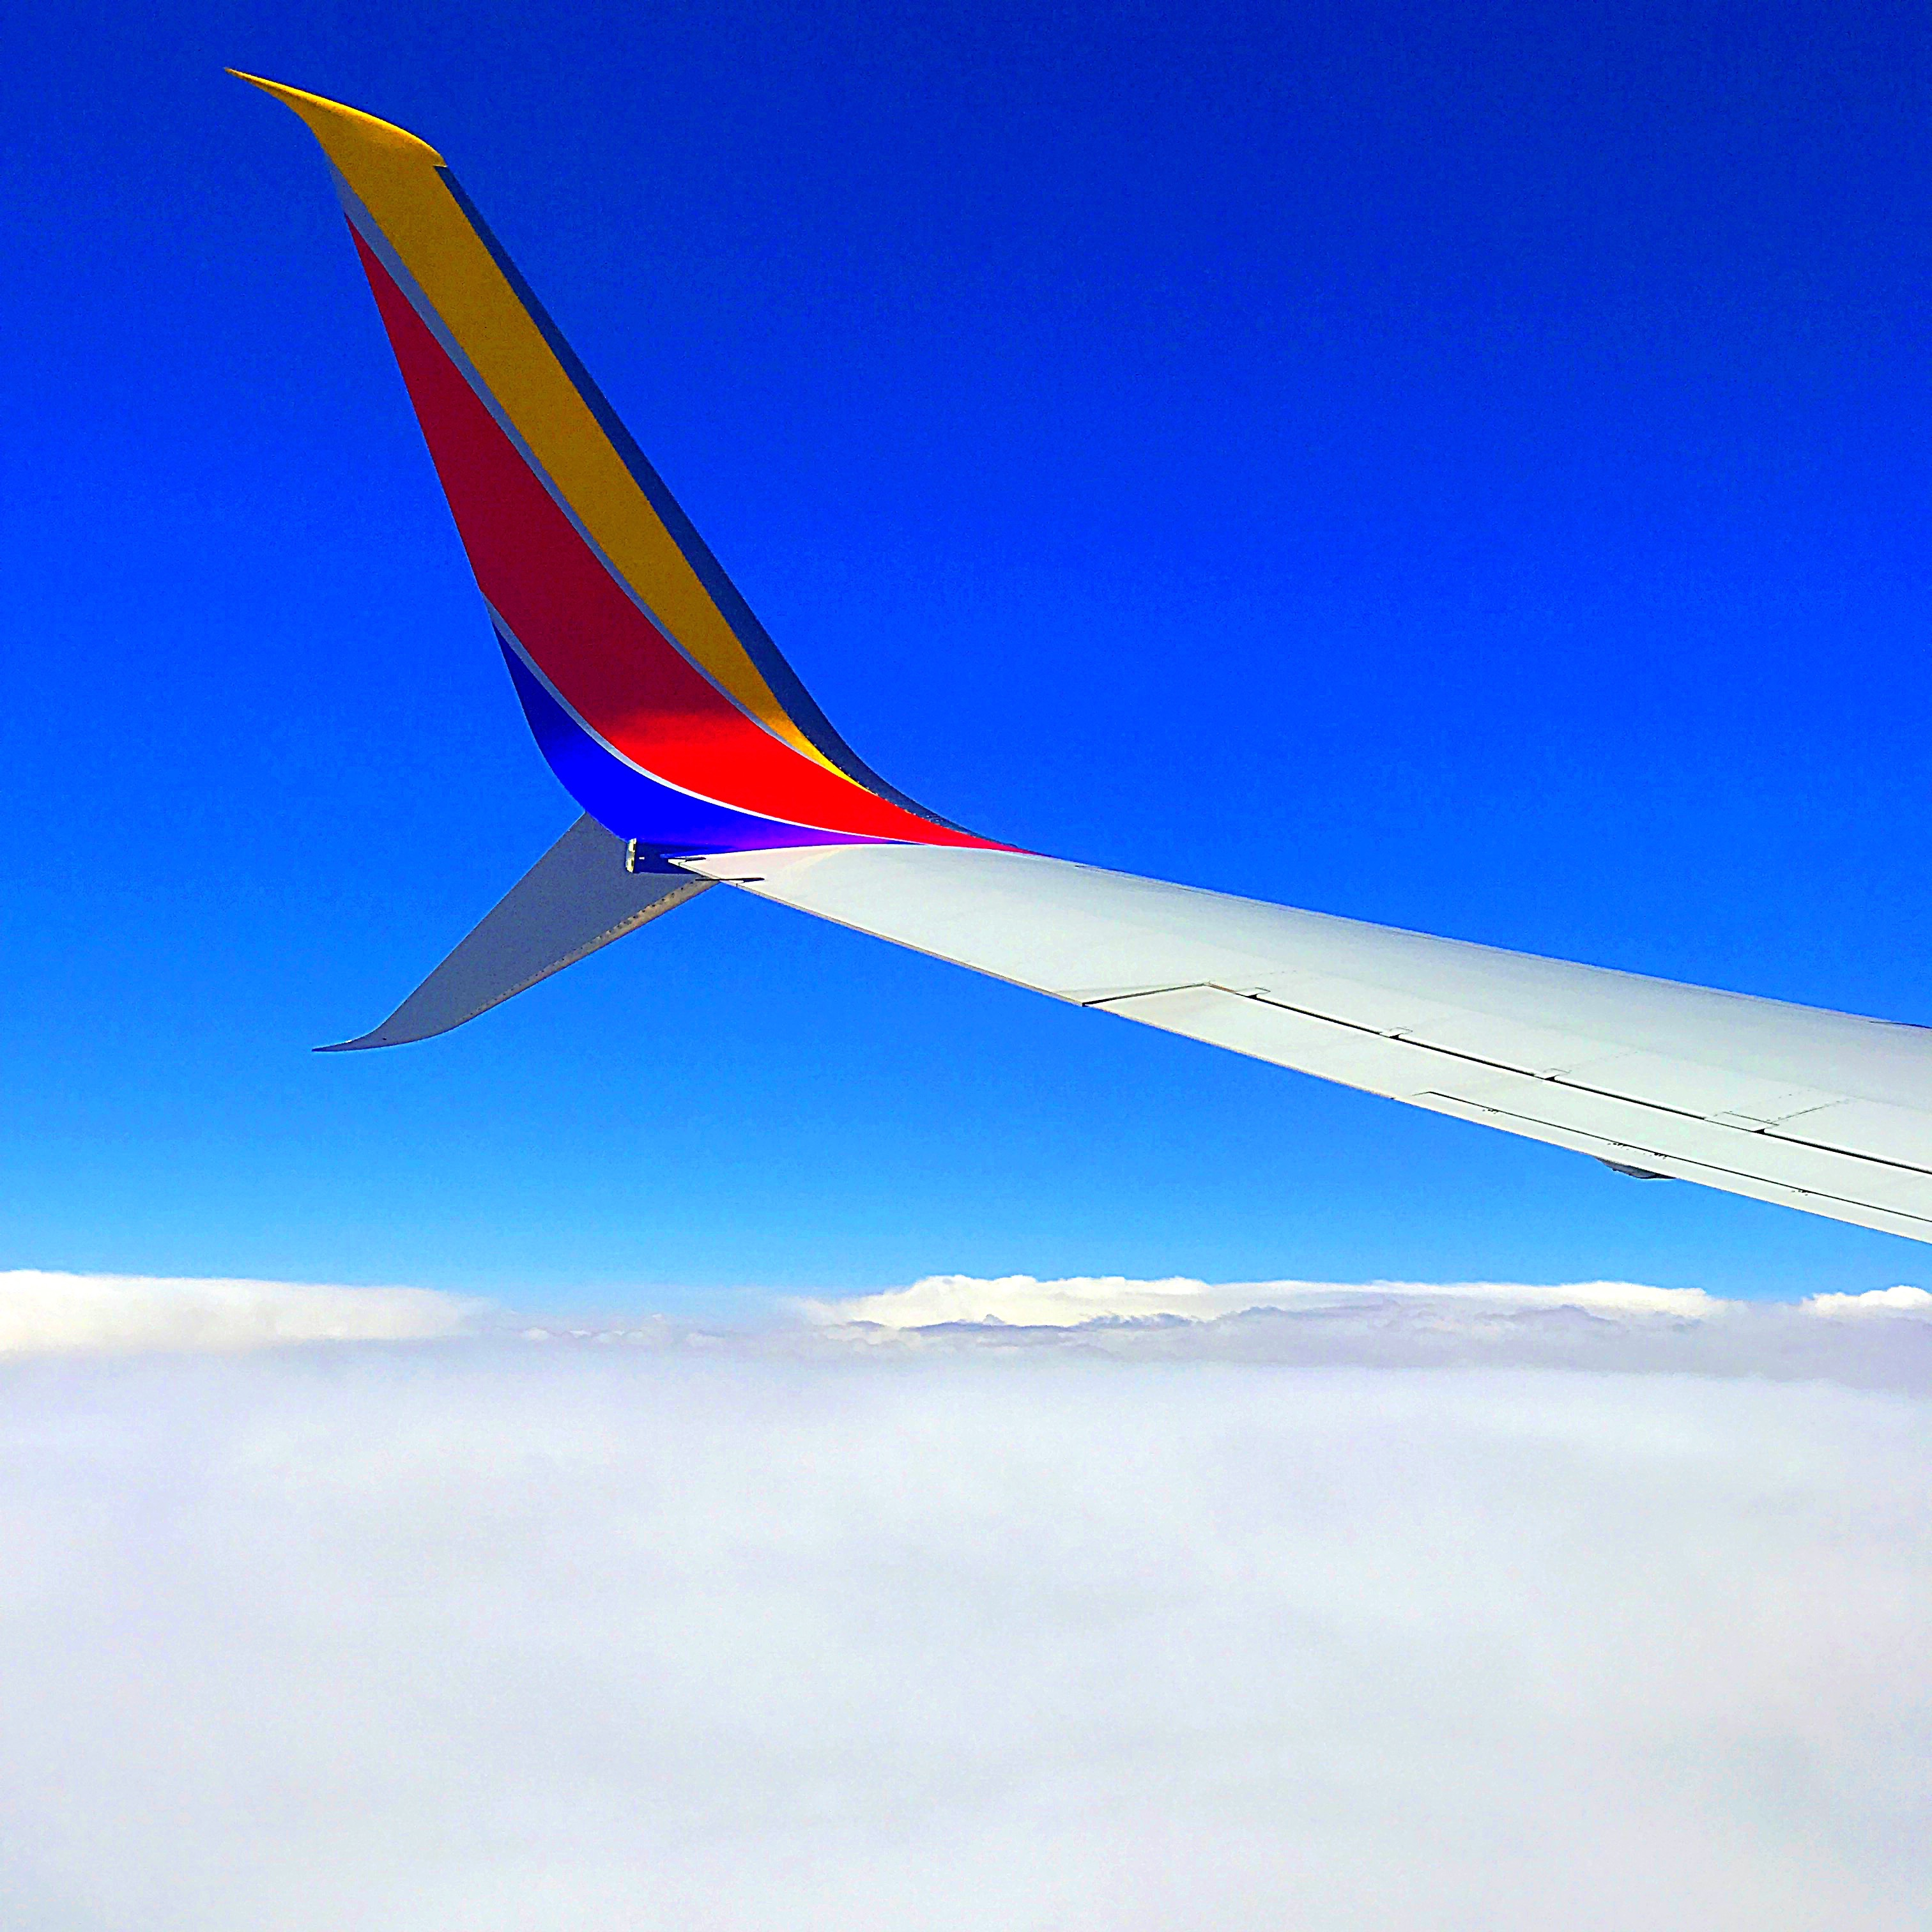 Our family saved $15K with Southwest Rapid Rewards and Southwest Companion Pass